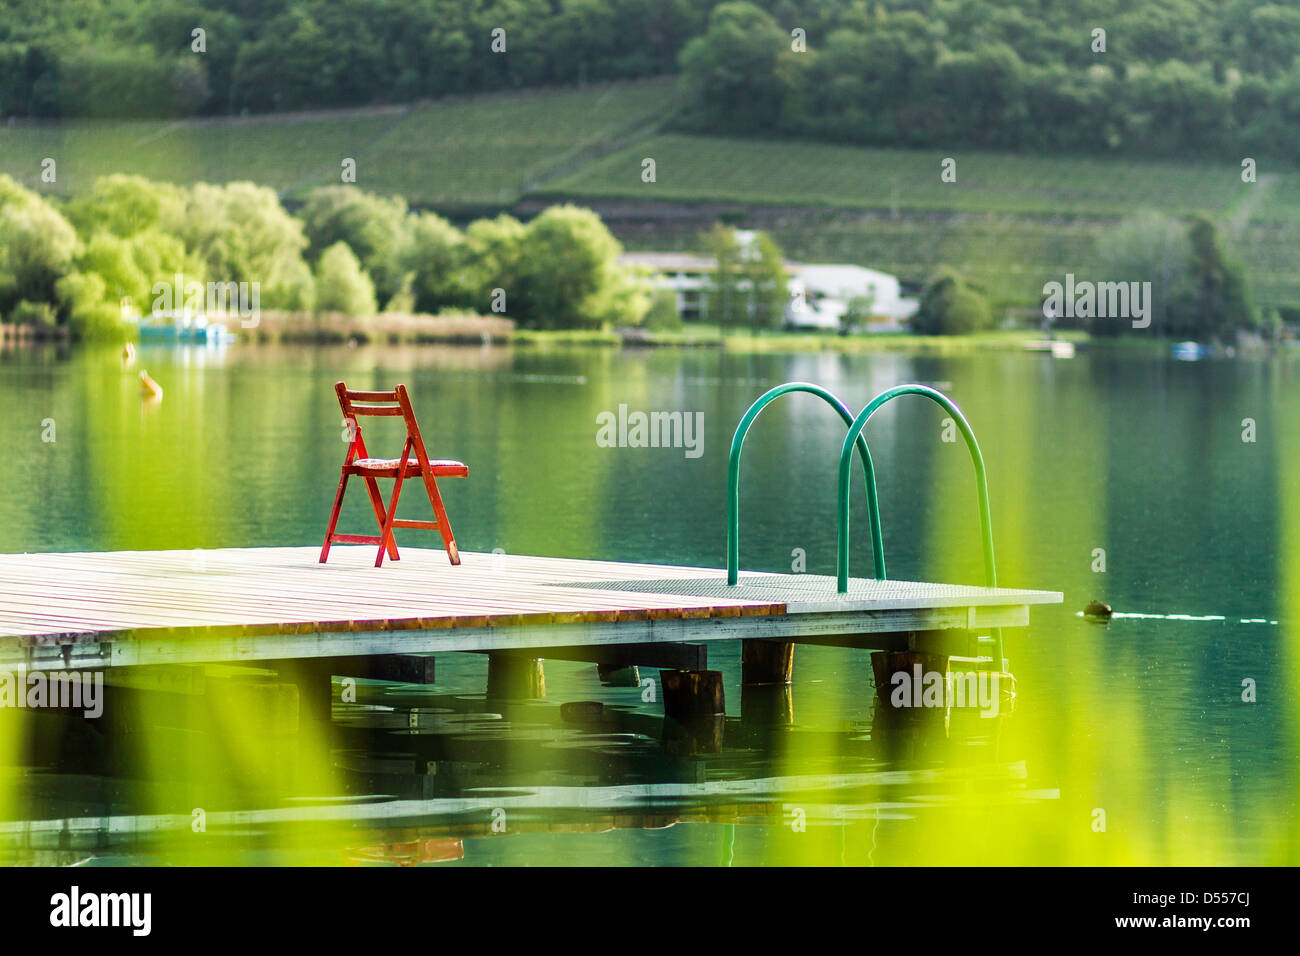 Chair on wooden pier in still rural lake - Stock Image